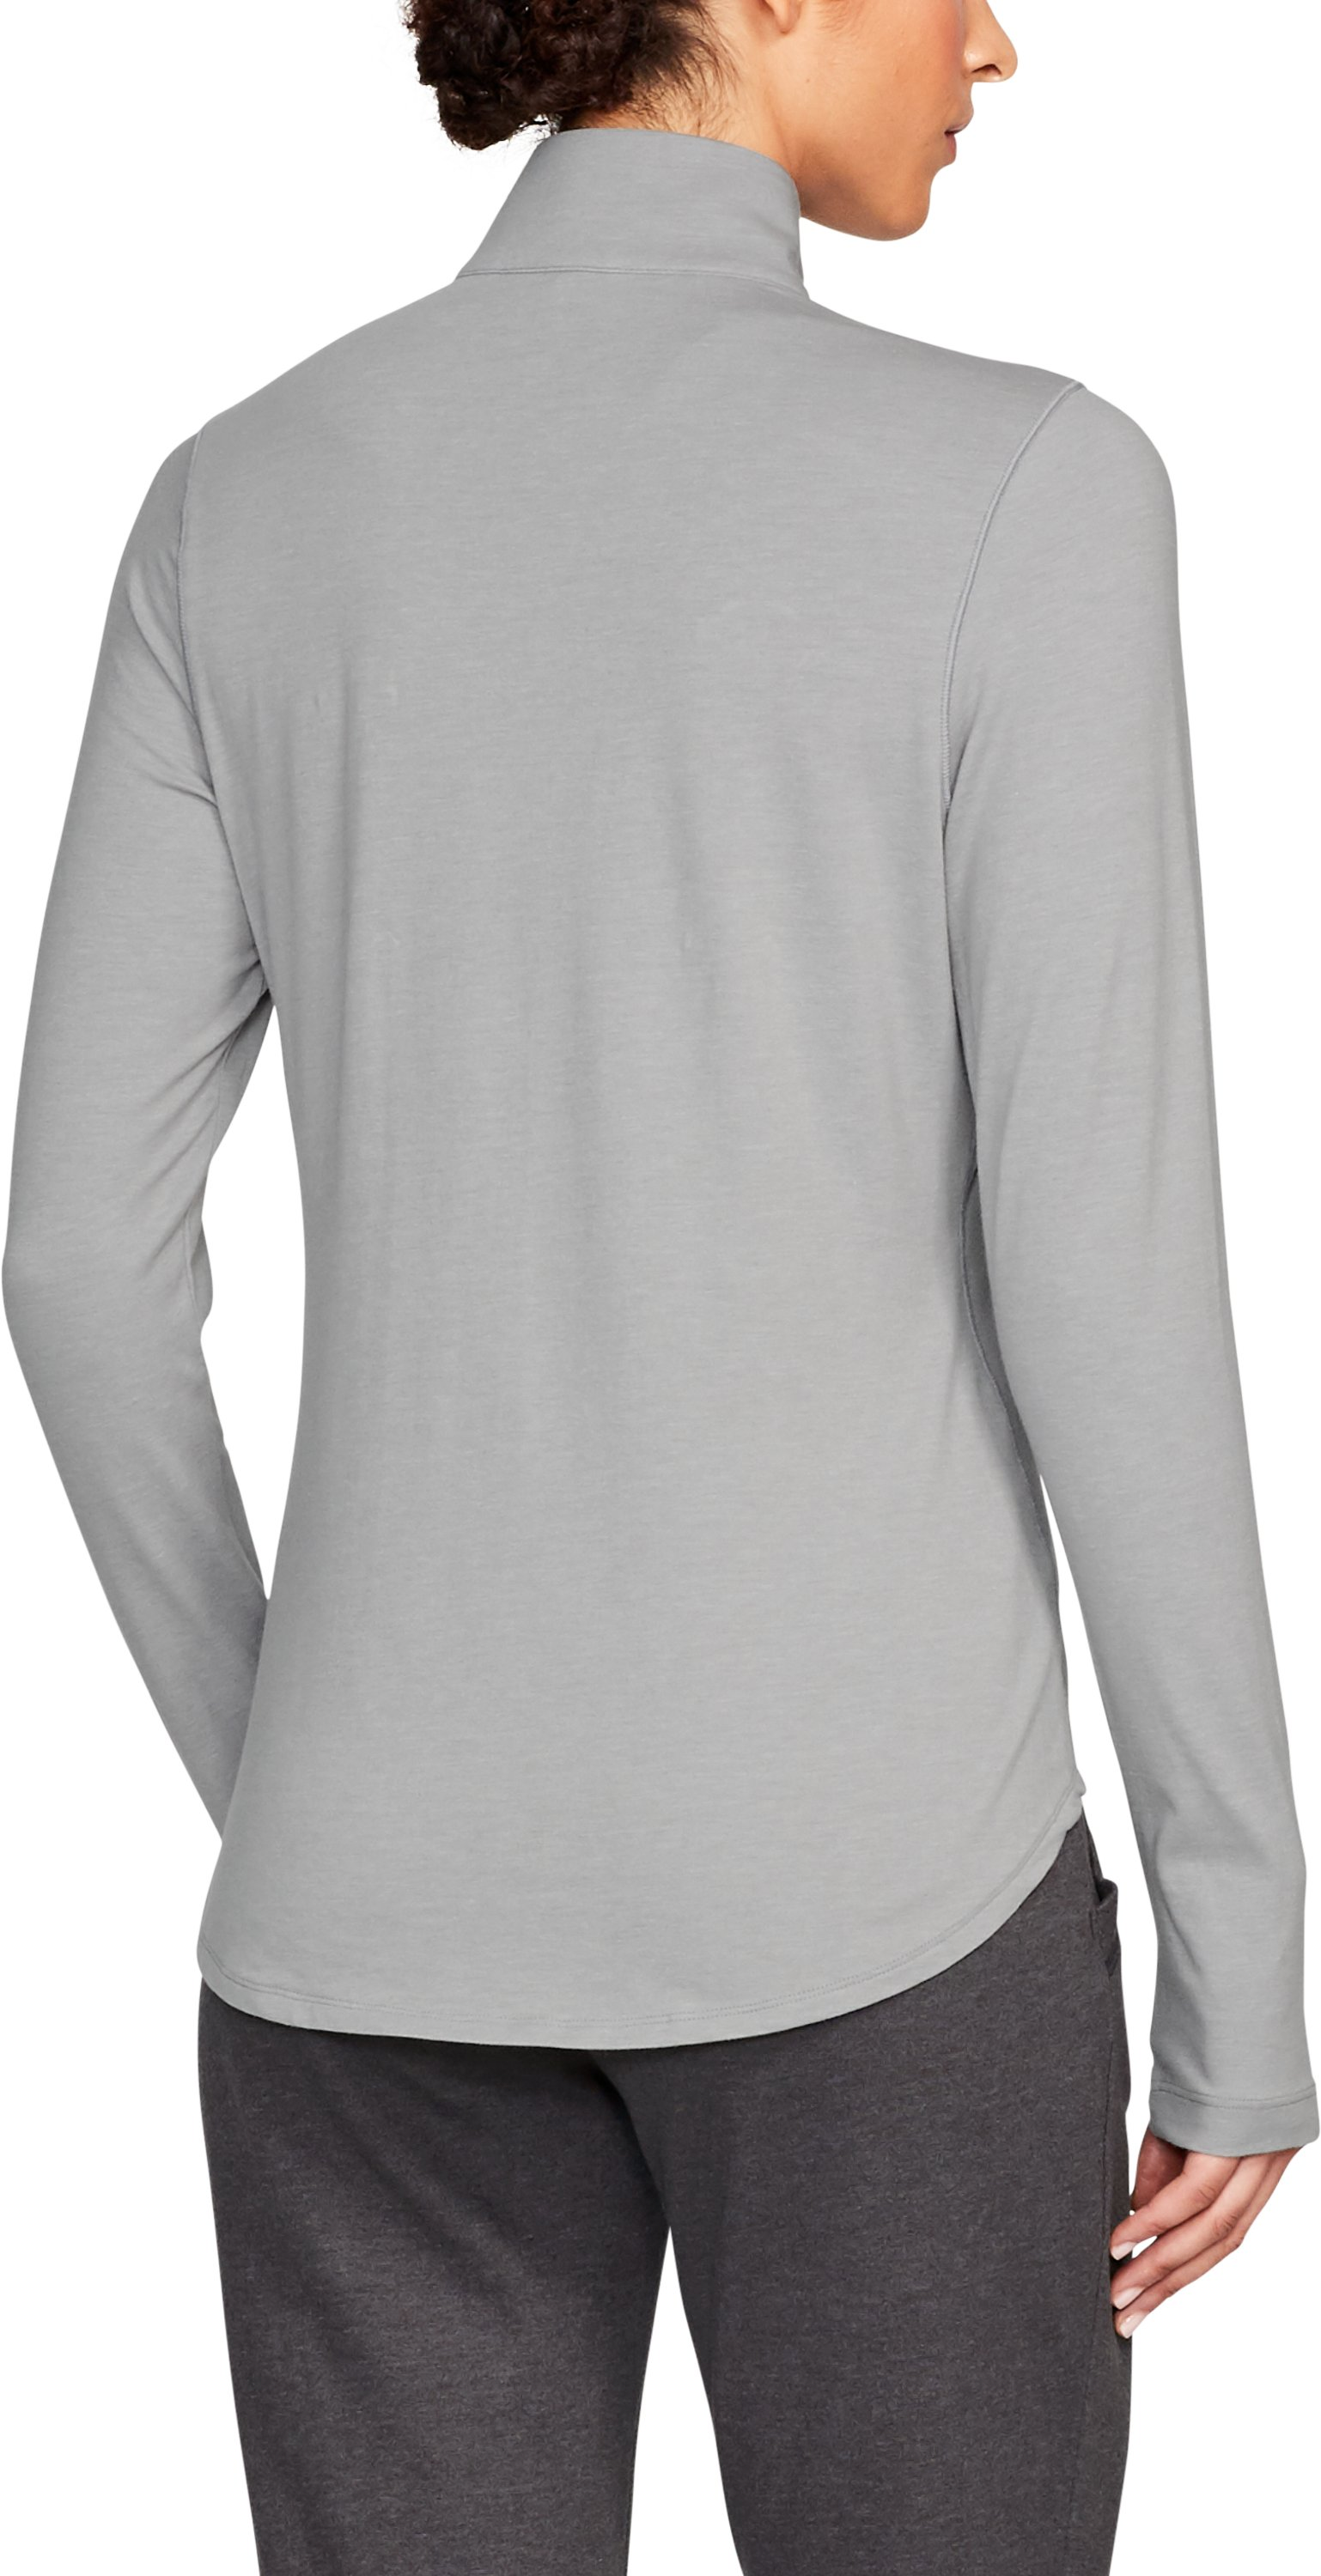 Women's UCLA Charged Cotton® ¼ Zip, True Gray Heather